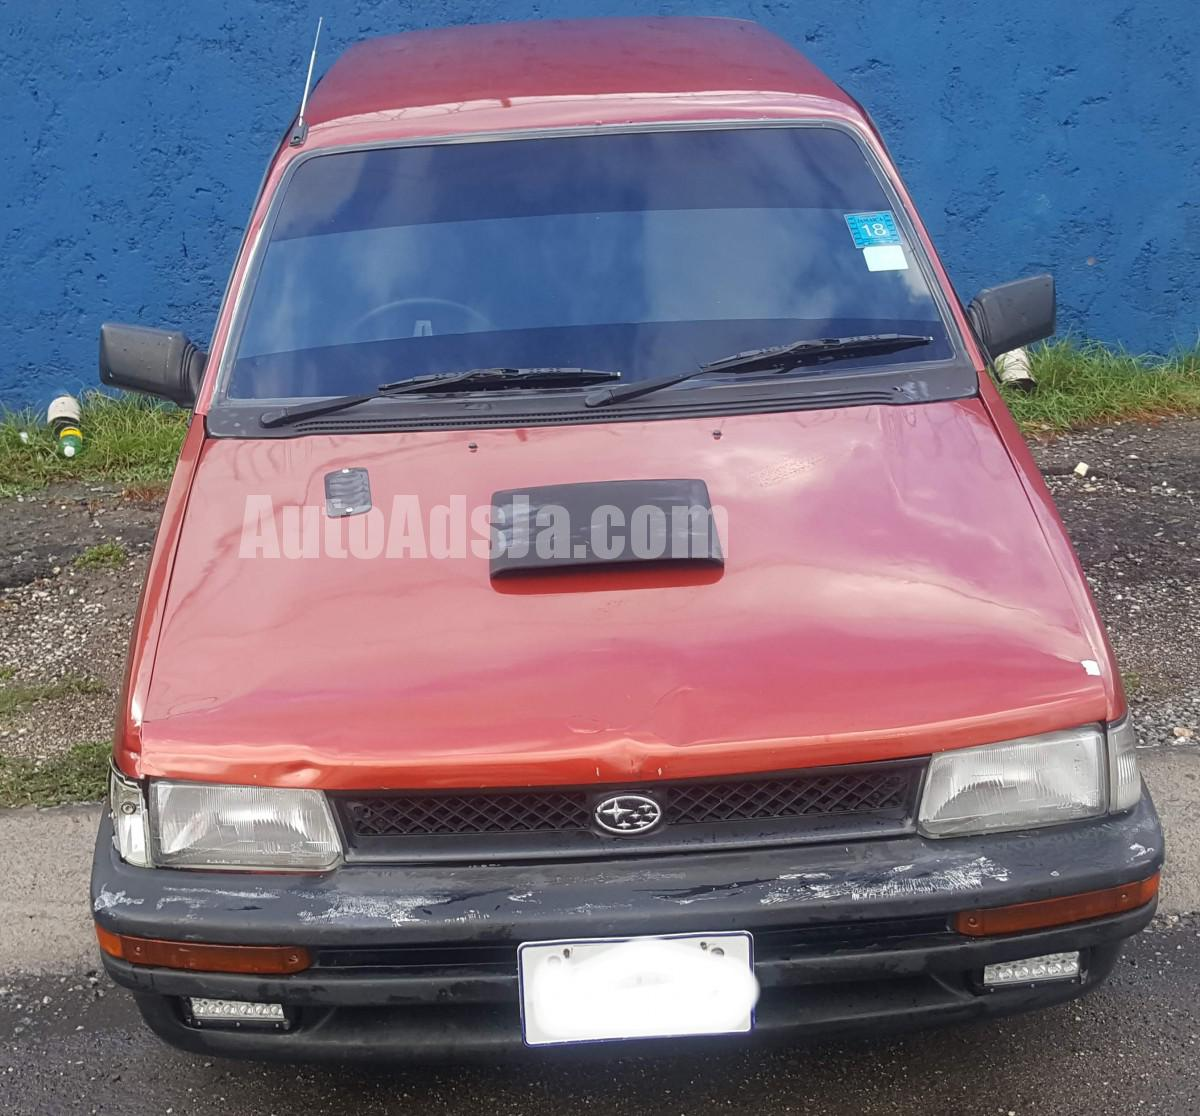 1000 Ideas About Subaru Justy On Pinterest: 1994 Subaru Justy For Sale In St. Catherine, Jamaica